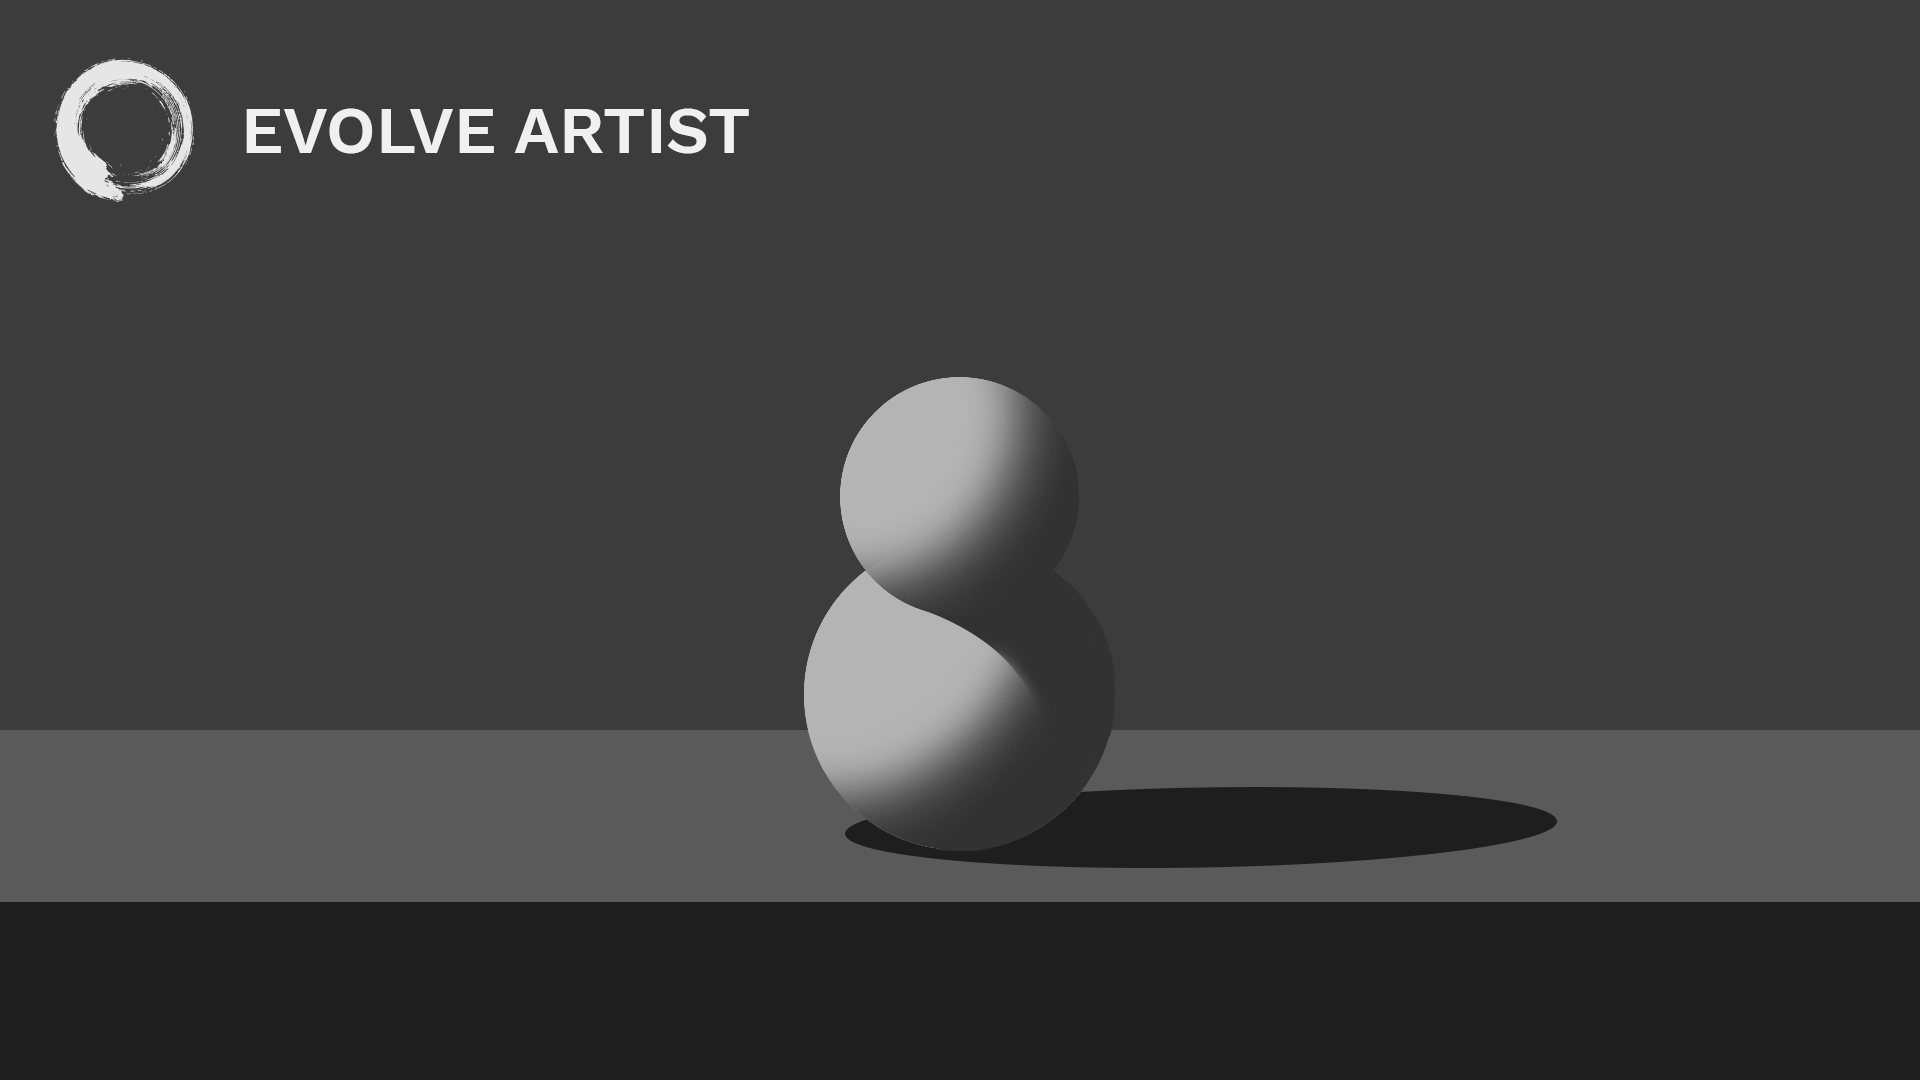 Learning how to paint edges adds form and depth to this image of a snowman.